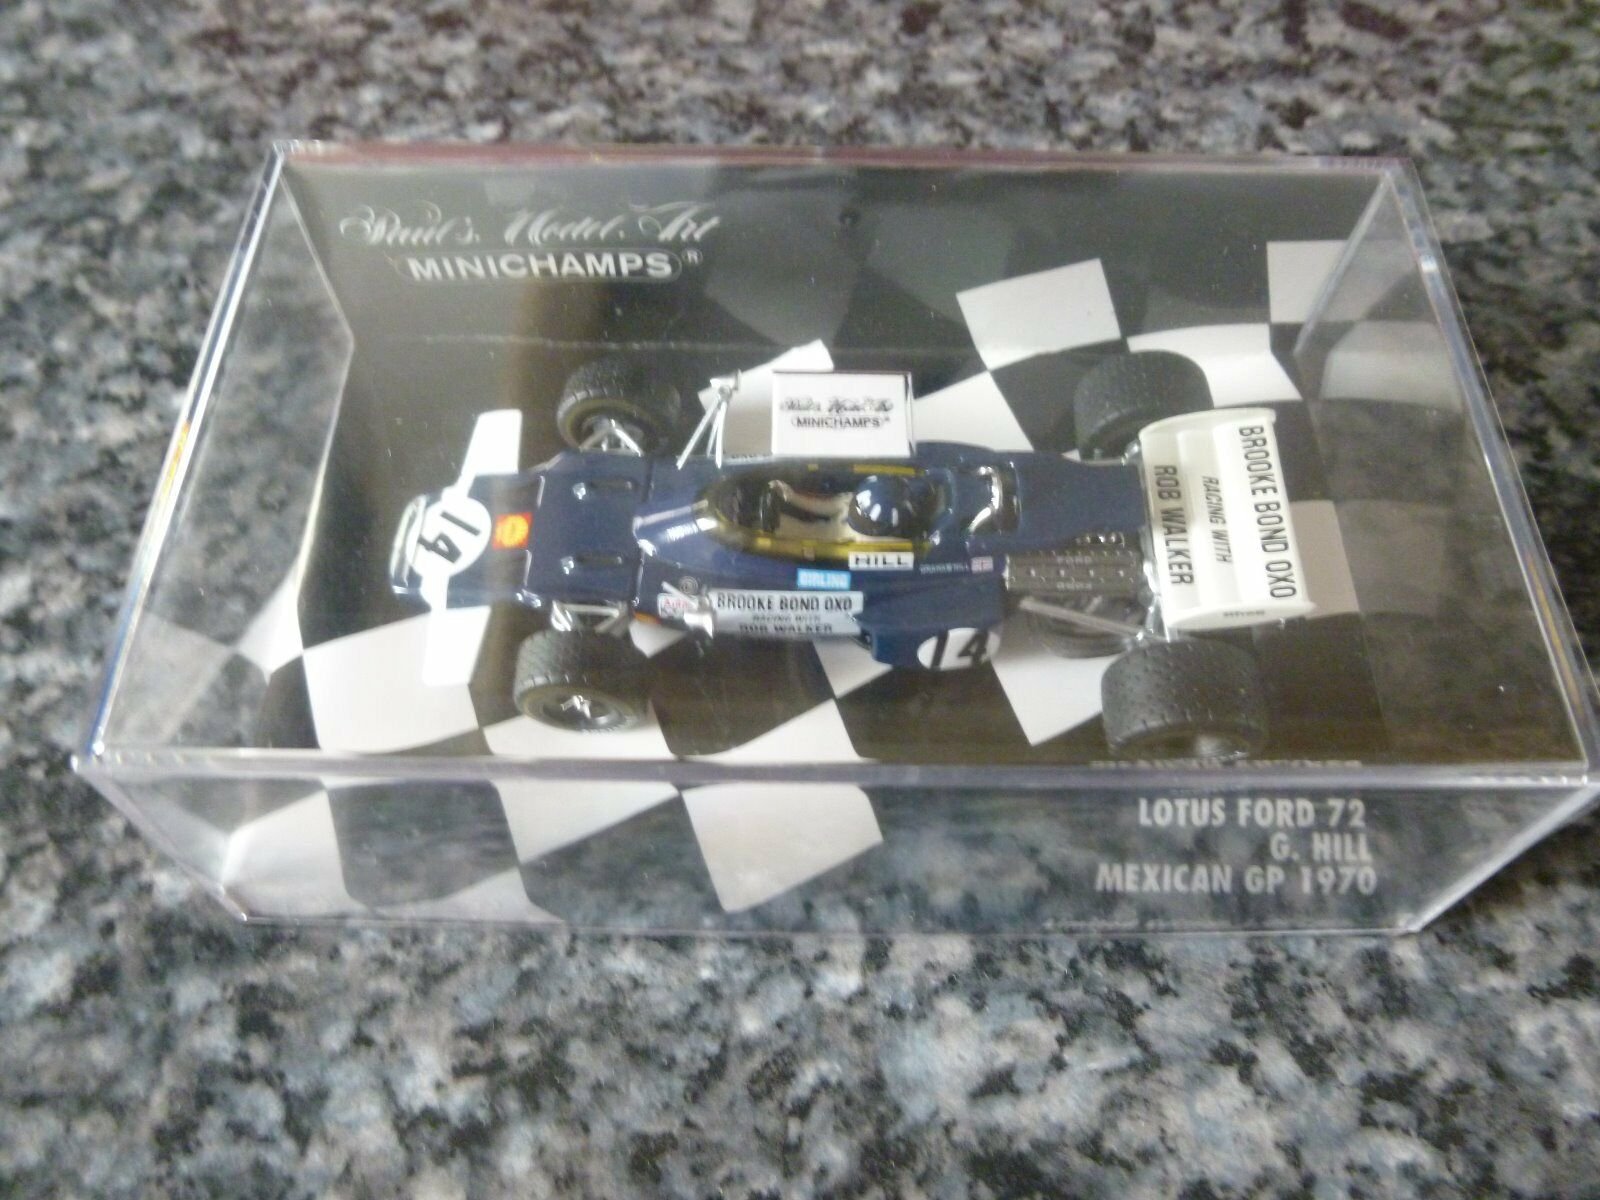 MINICHAMPS LOTUS FORD 72 1970-Hill